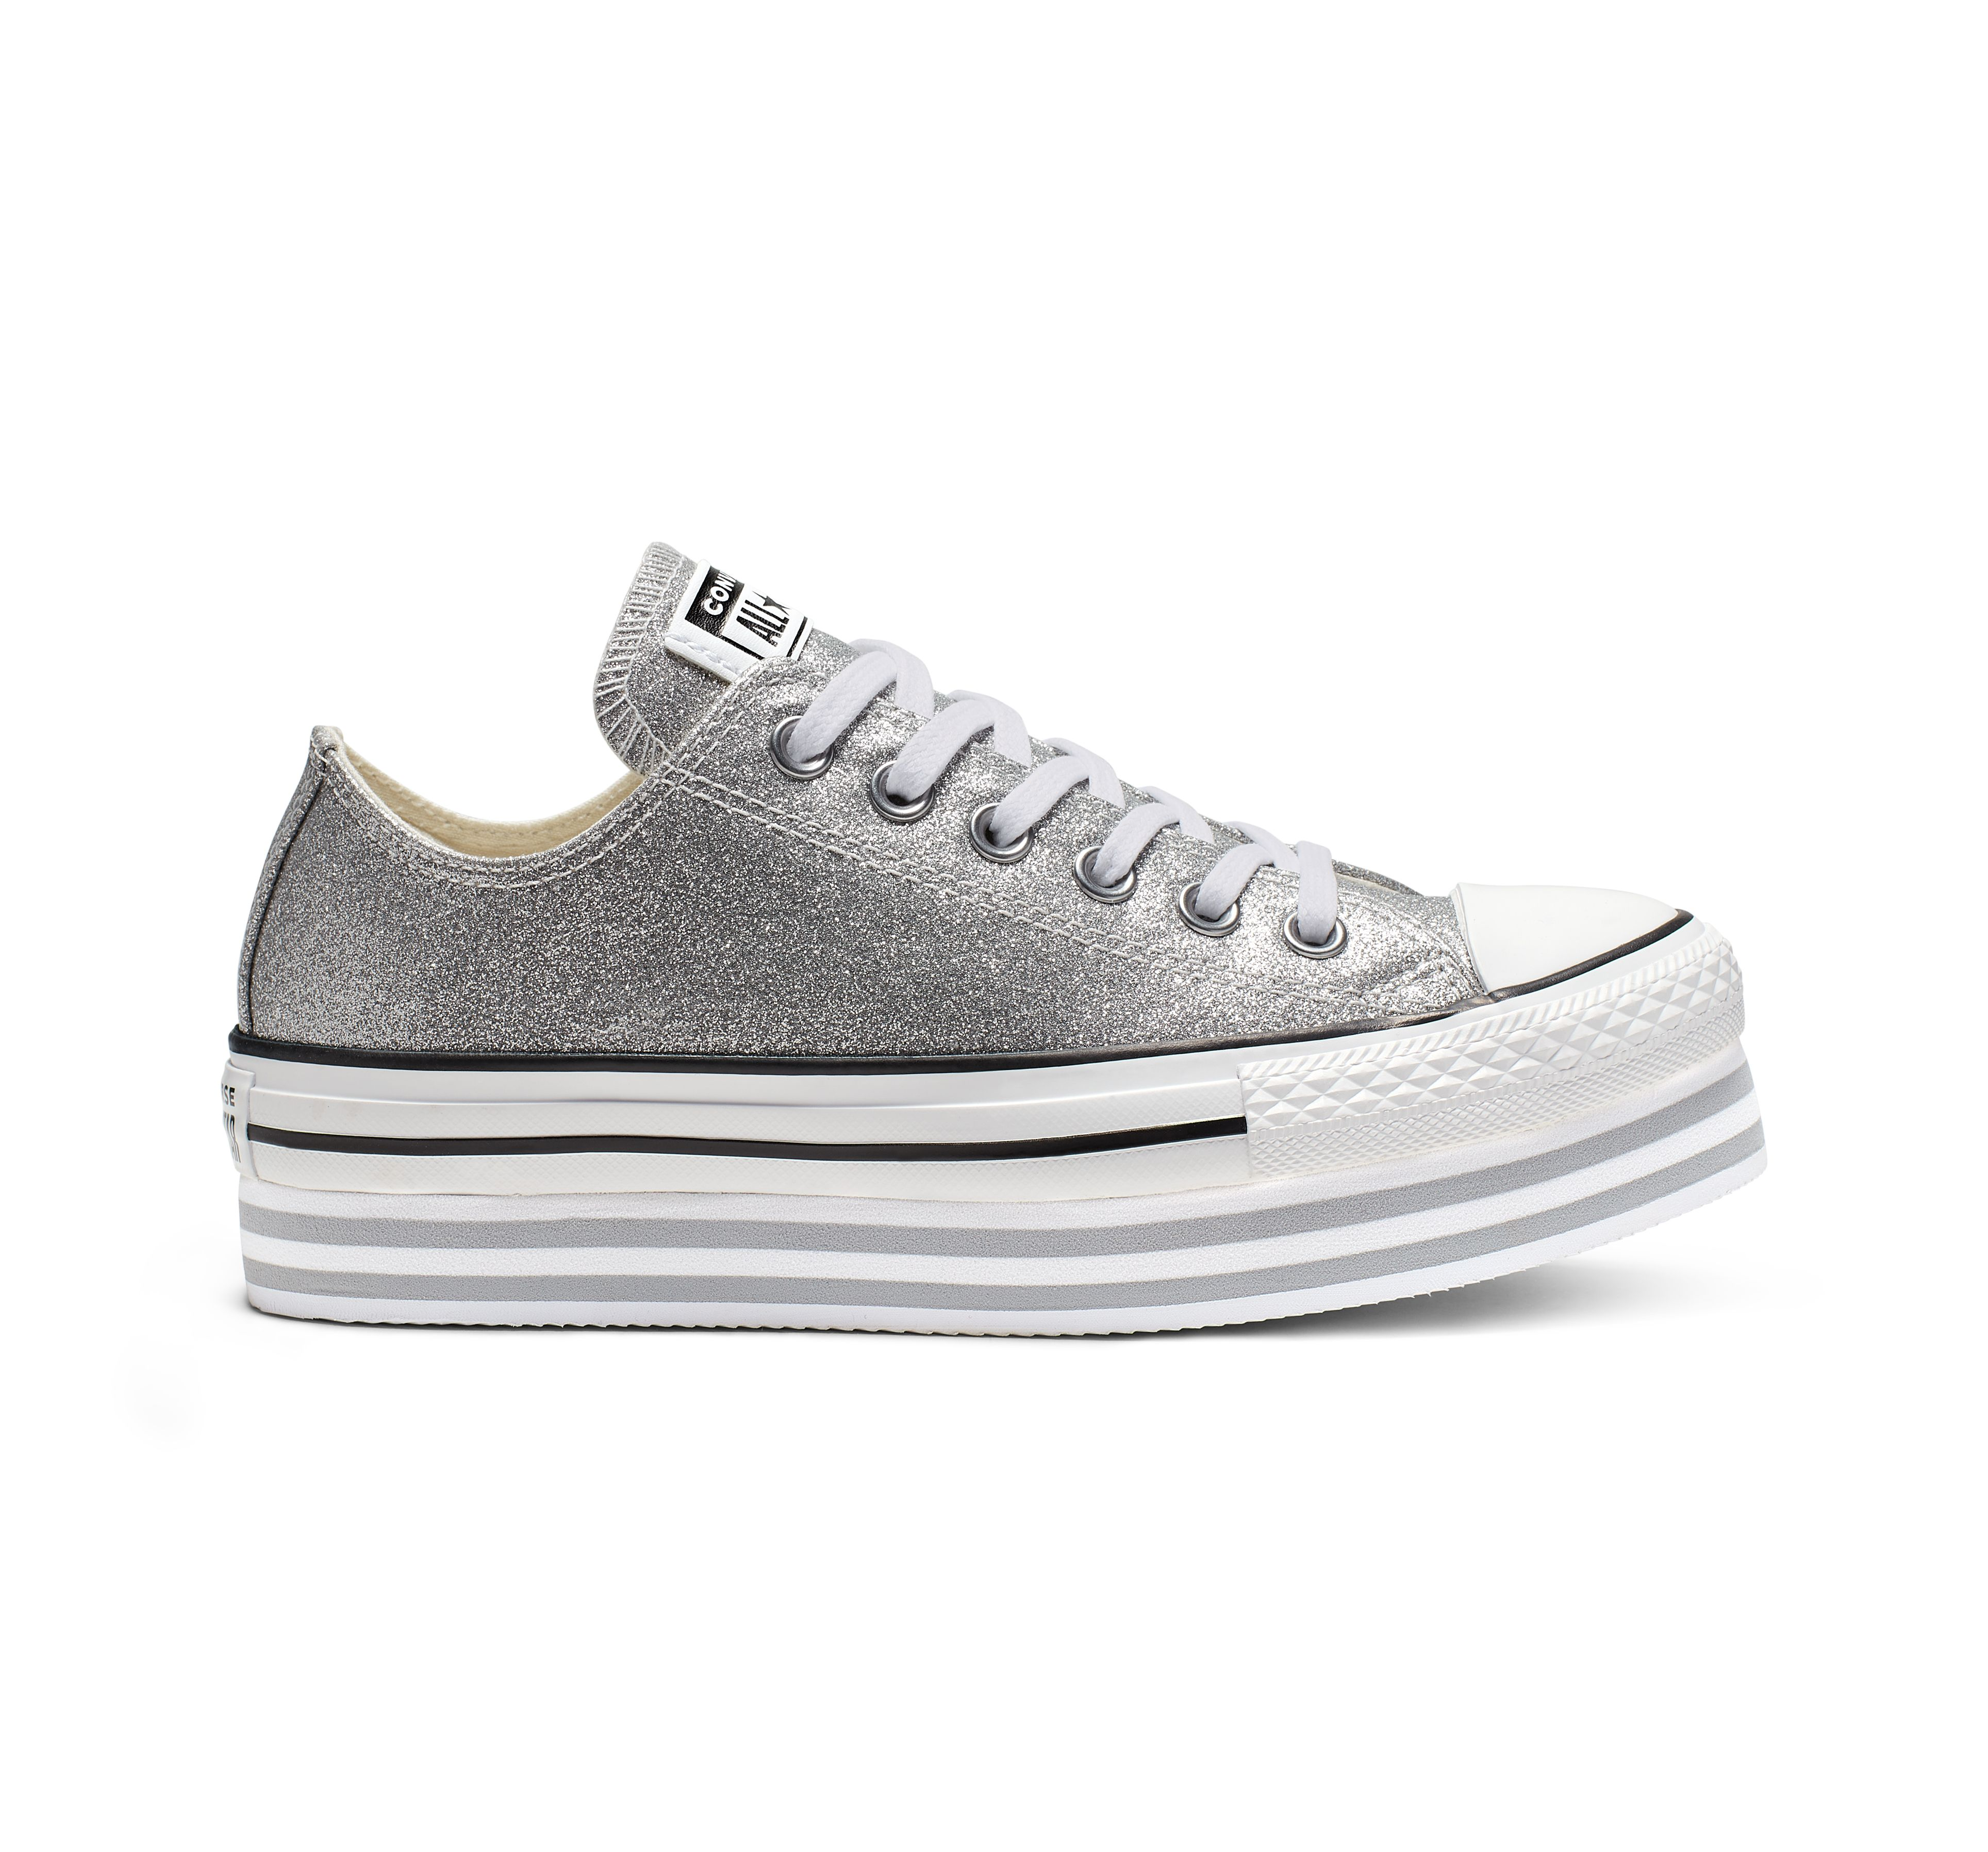 White Classic Platforms CONVERSE Women All Star Canvas Shoes For Sale